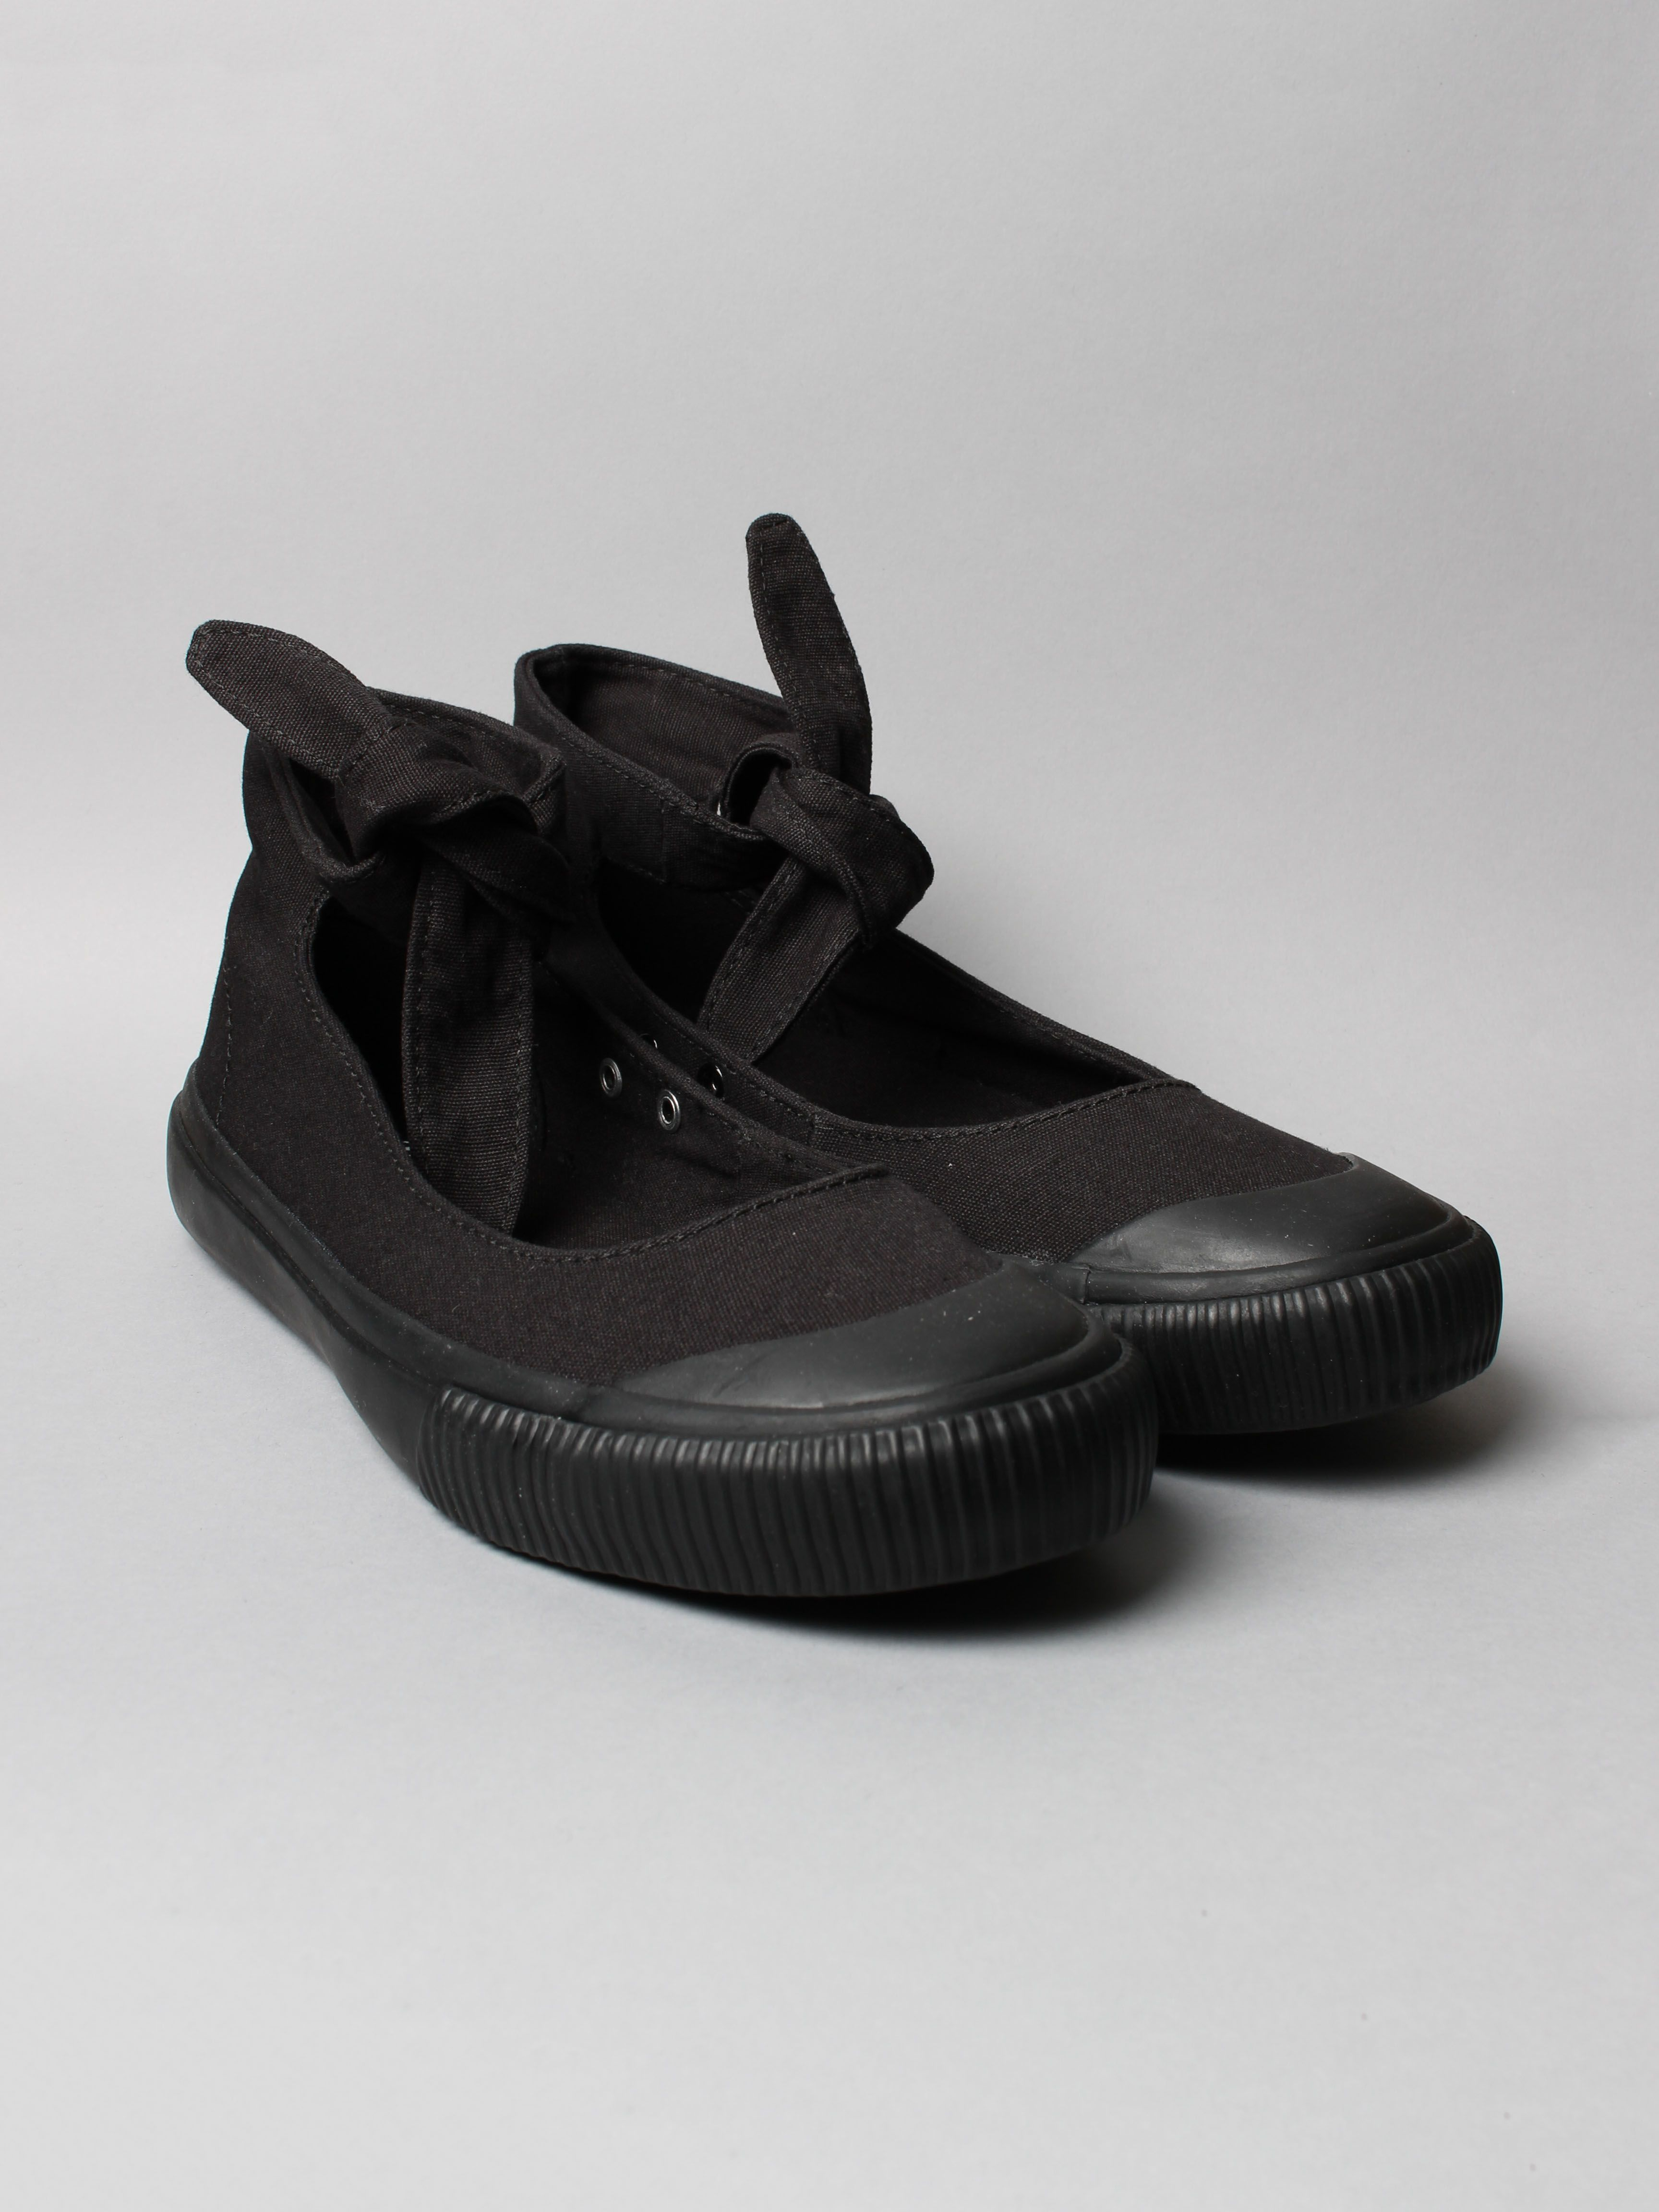 6181d06ac37 Y S BY YOHJI YAMAMOTO AVAILABLE AT EIZENSTEIN